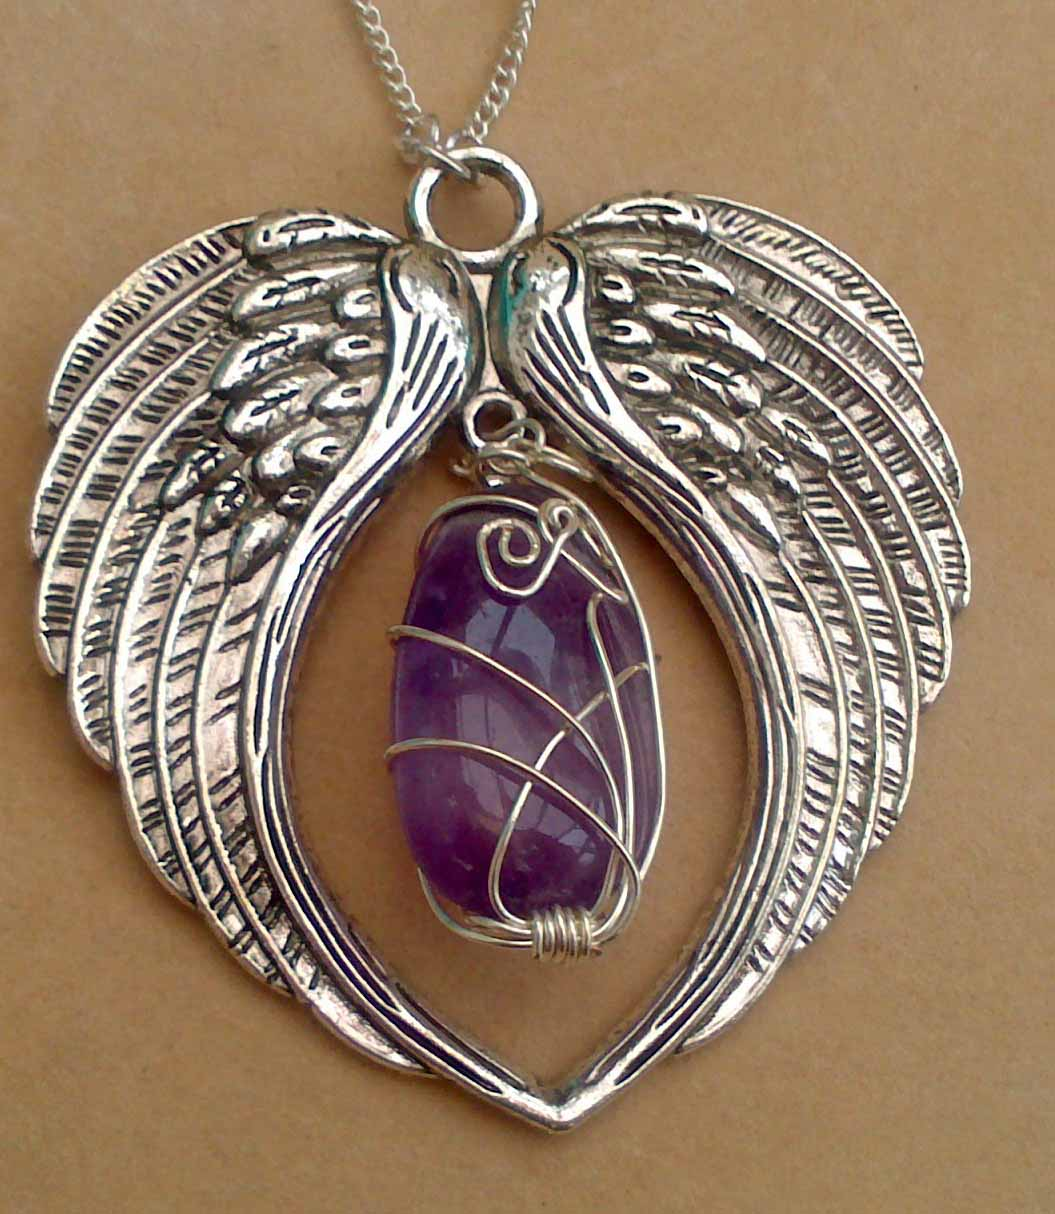 Angel Wings with Amethyst Necklace - Give the Gift that Gives - Handmade Healing Crystal Jewellery by Eva Maria Hunt